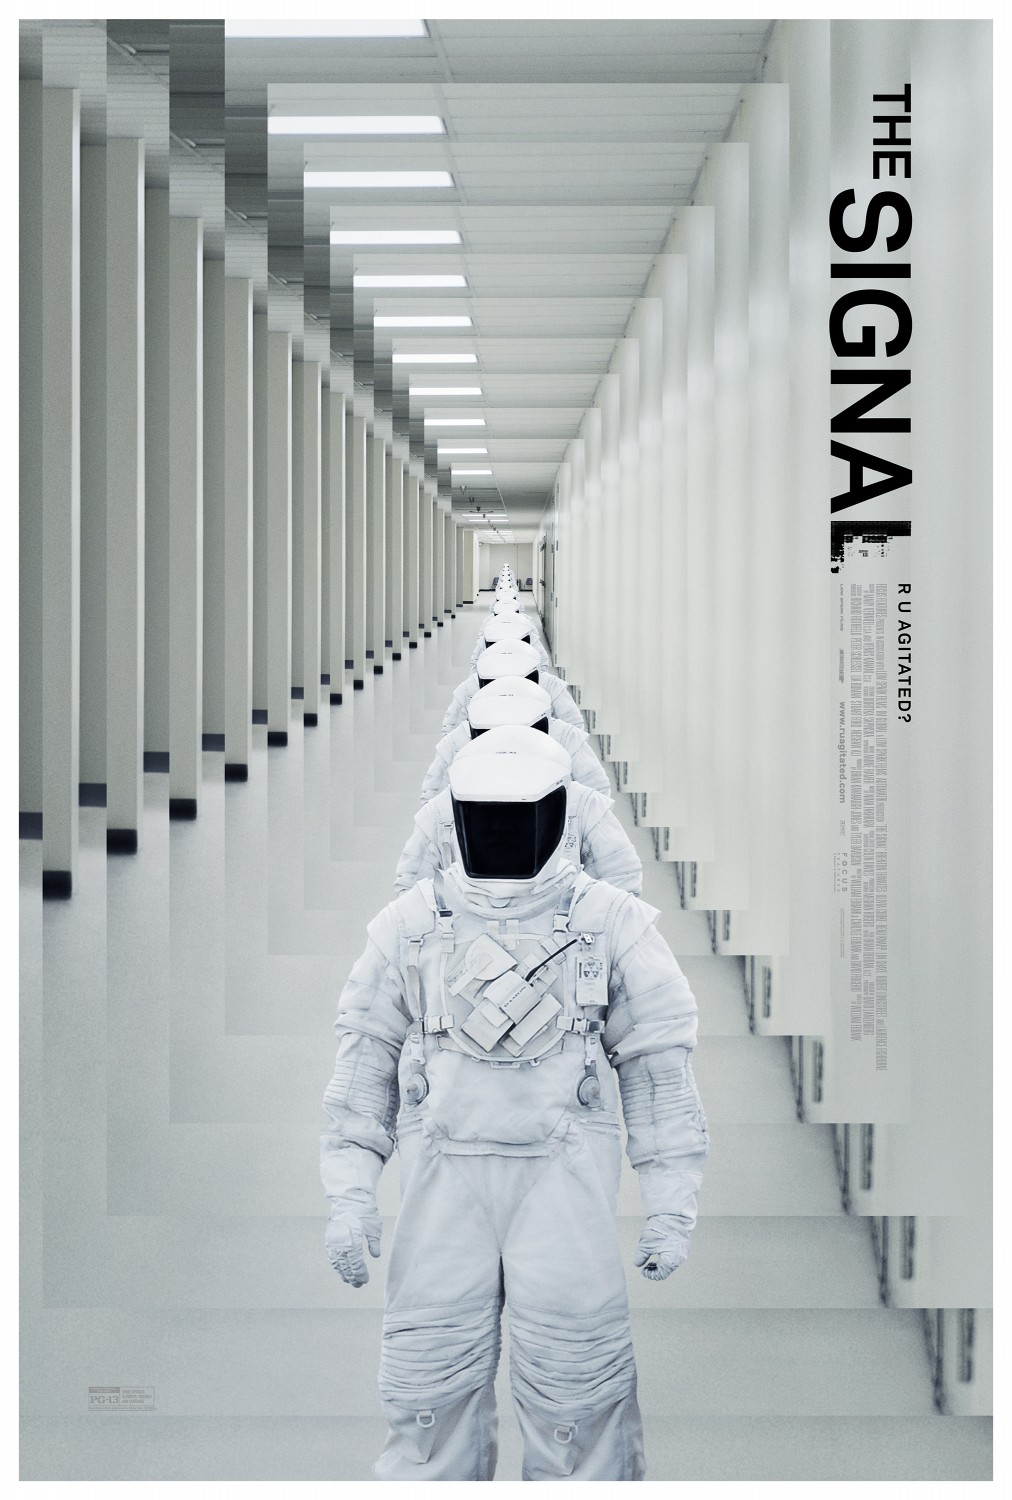 The Signal | VOSTFR [DVDRIP]